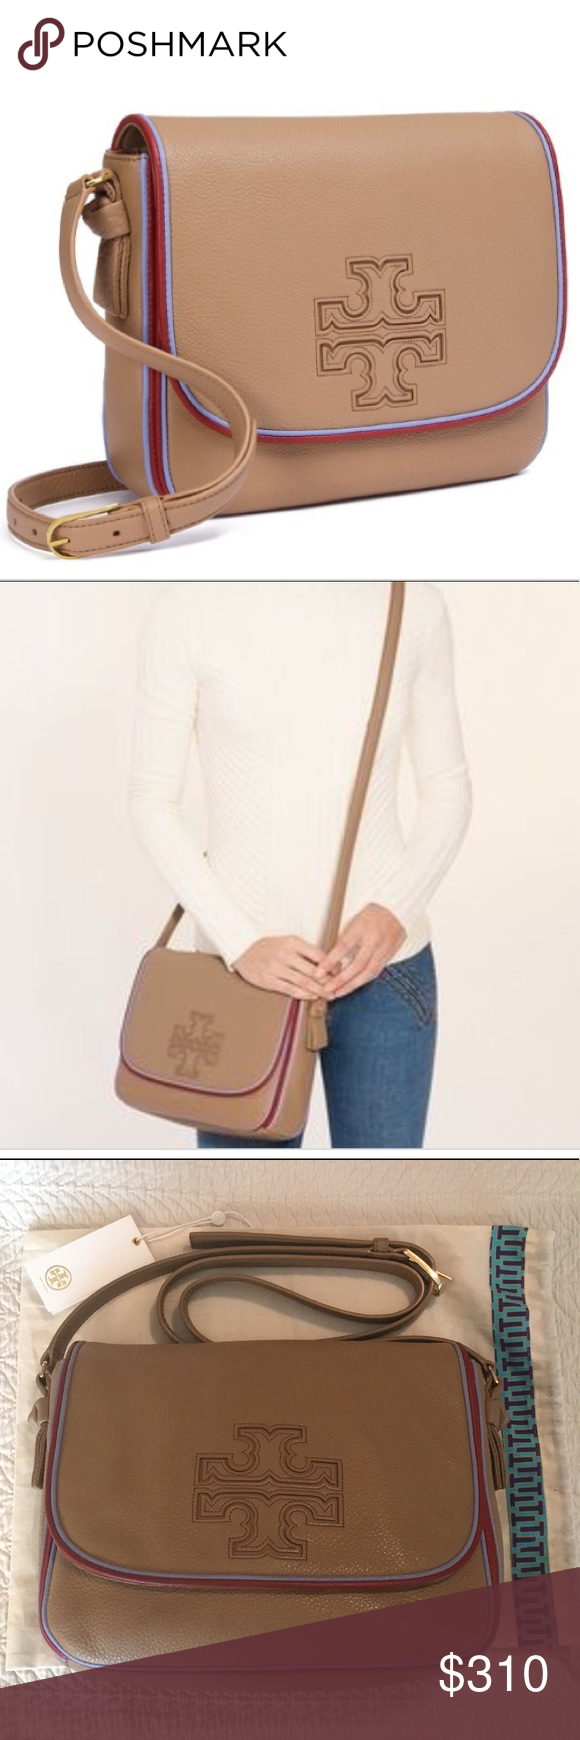 ec20318b2257 Authentic Tory Burch Harper Stripe Messenger Tory Burch Harper Stripe  Messenger Vintage Camel color with Redwood